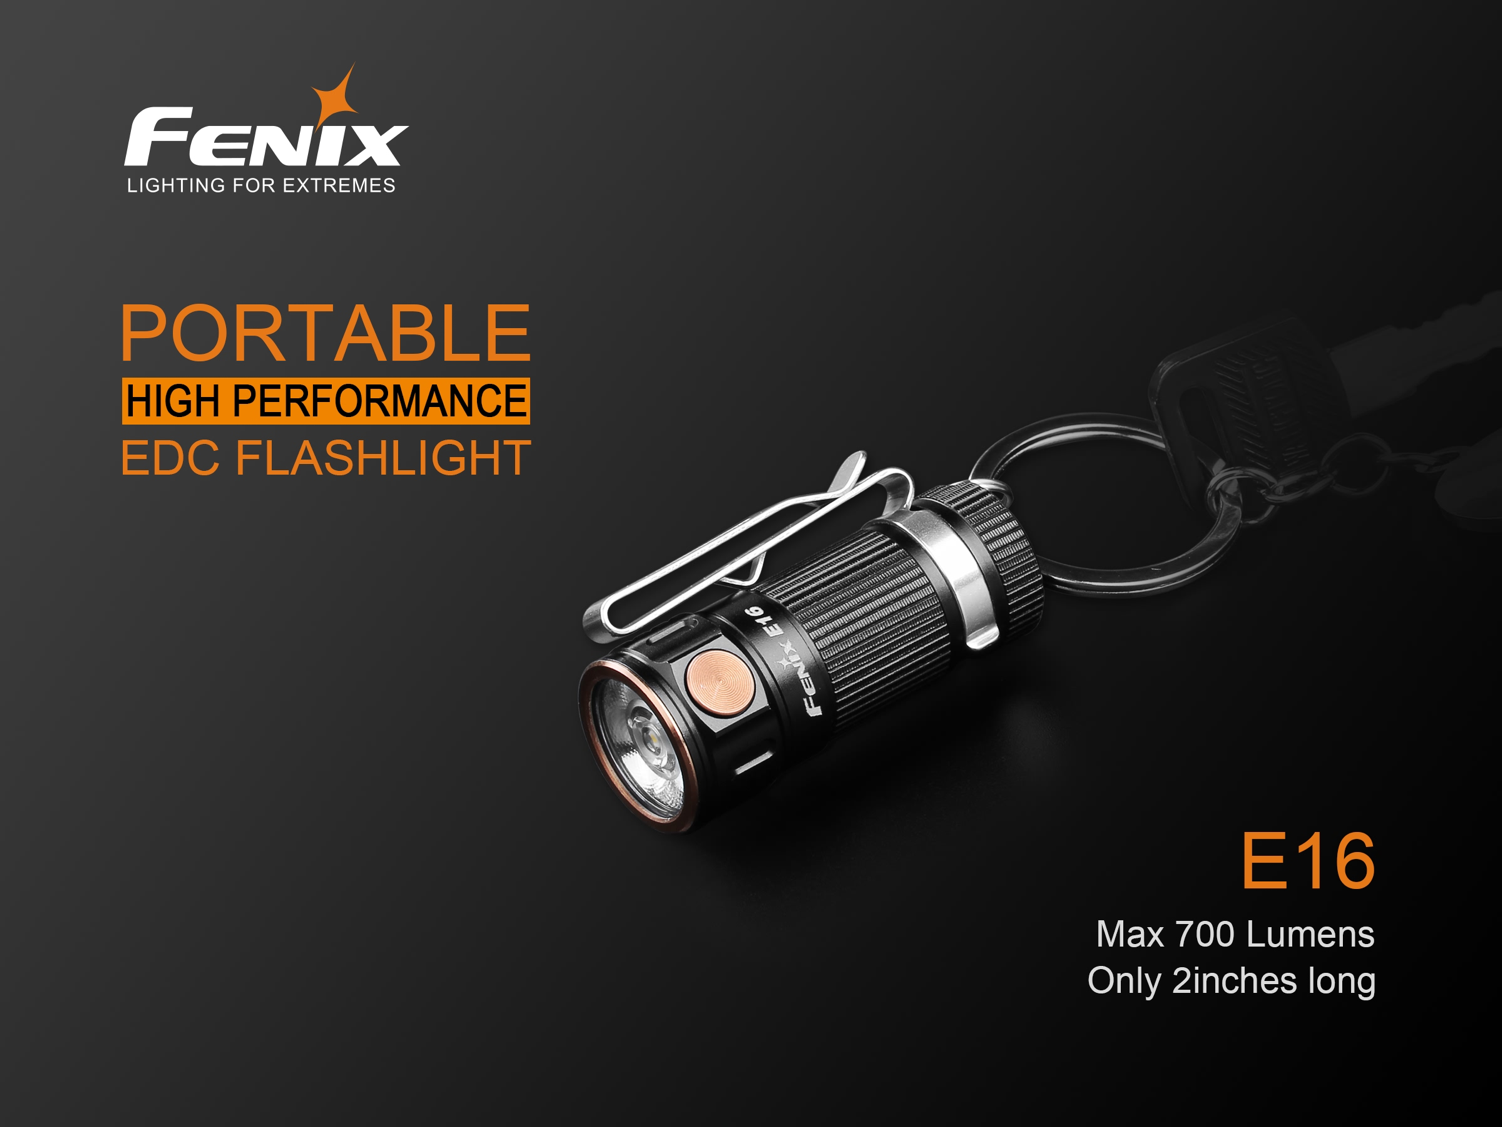 Fenix E16 LED Flashlight in India, Everyday Carry Torch, Compact, Lightweight yet Powerful Torch, 700 Lumens Neutral White Led, Hand Held Pocket Size Flashlight, Keychain Light